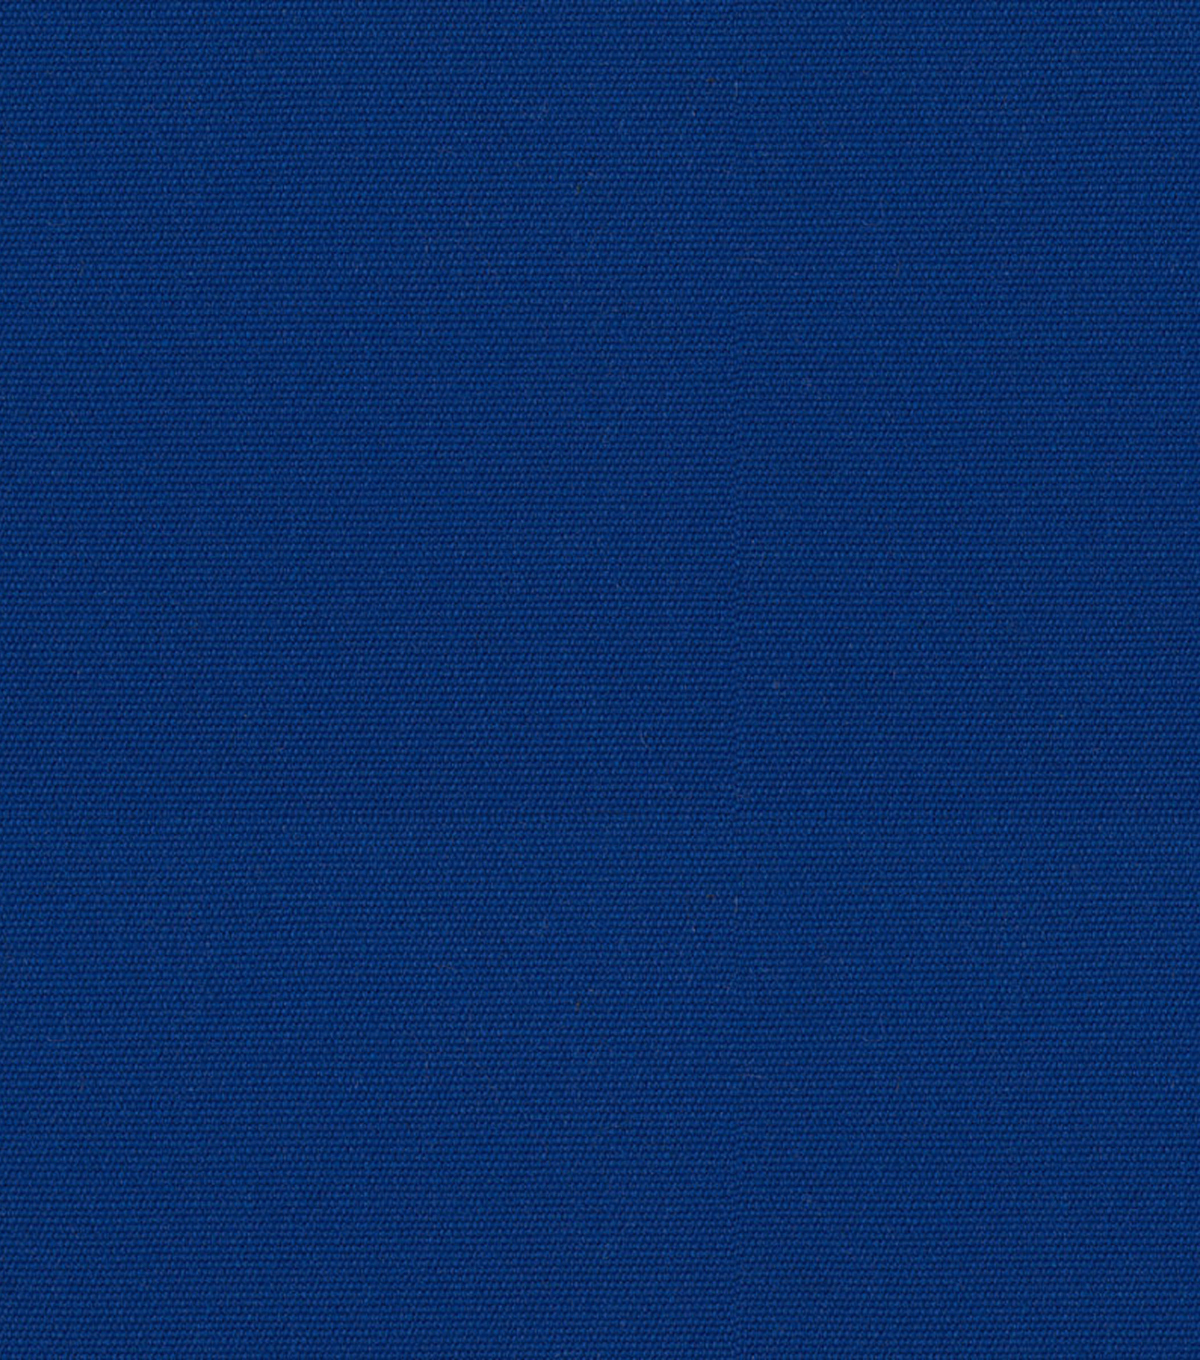 Sunbr Plus 60 8401 Pacific Blue Swatch